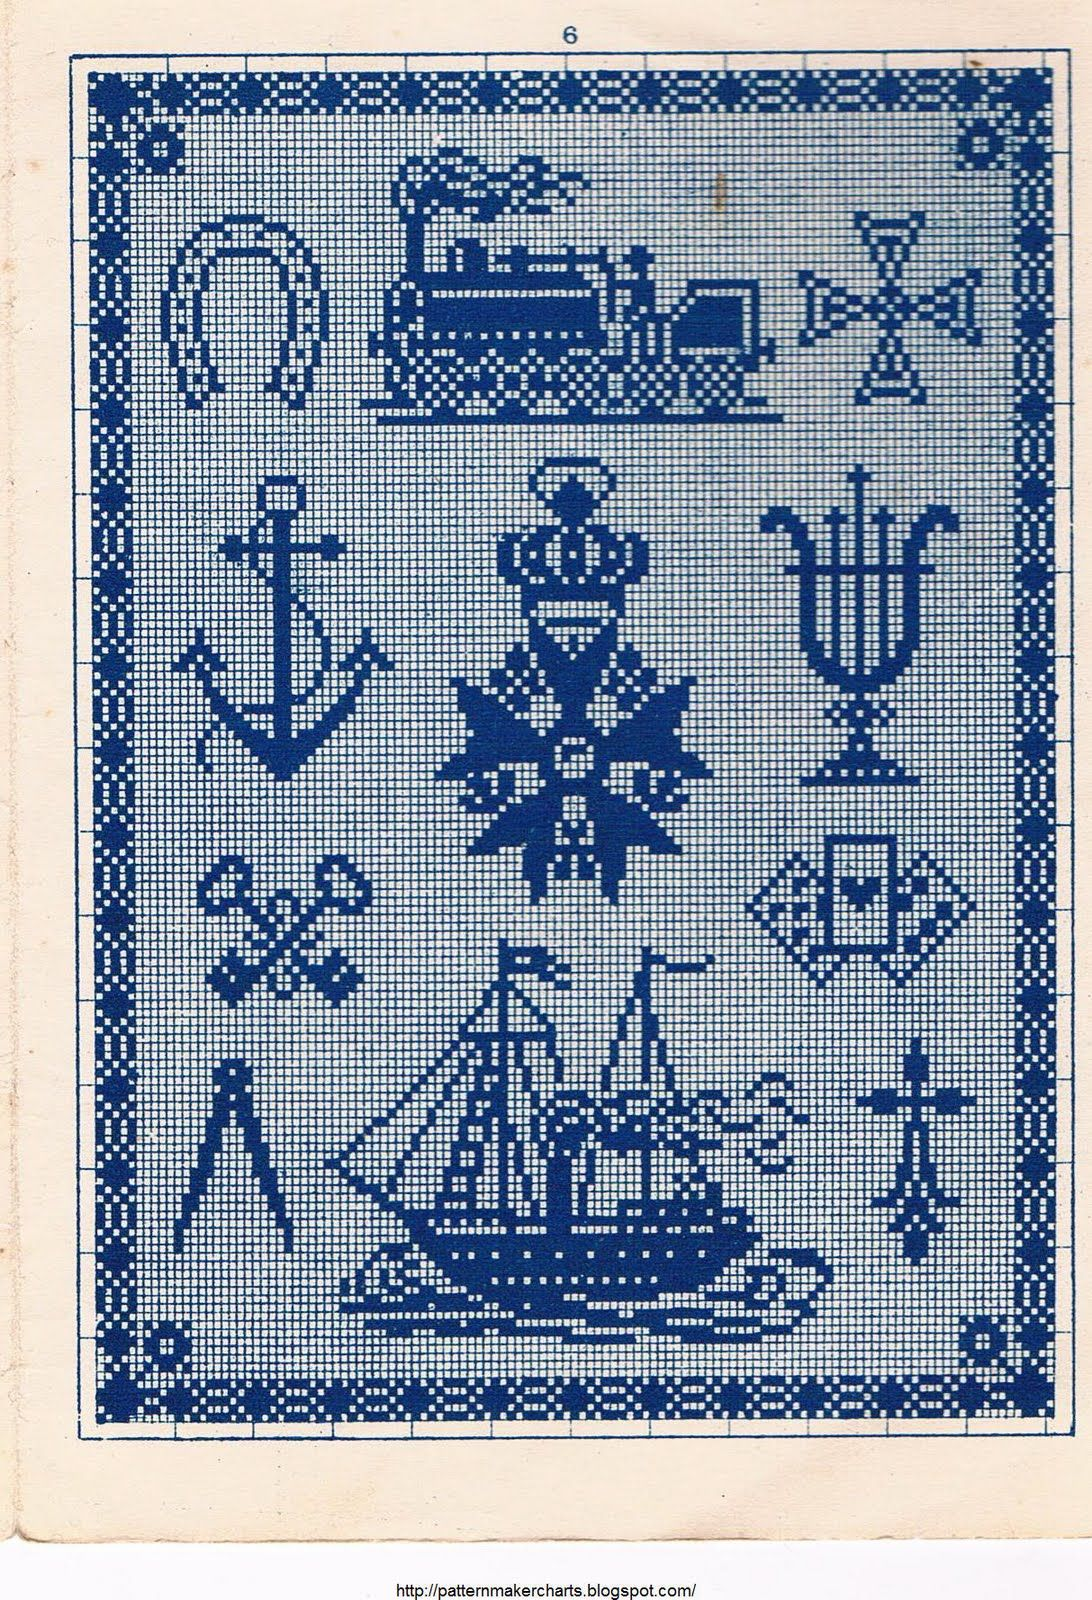 Technological advances as a subject in embroidery steam engine free easy cross pattern maker pcstitch charts free historic old pattern books pcstitch bankloansurffo Image collections